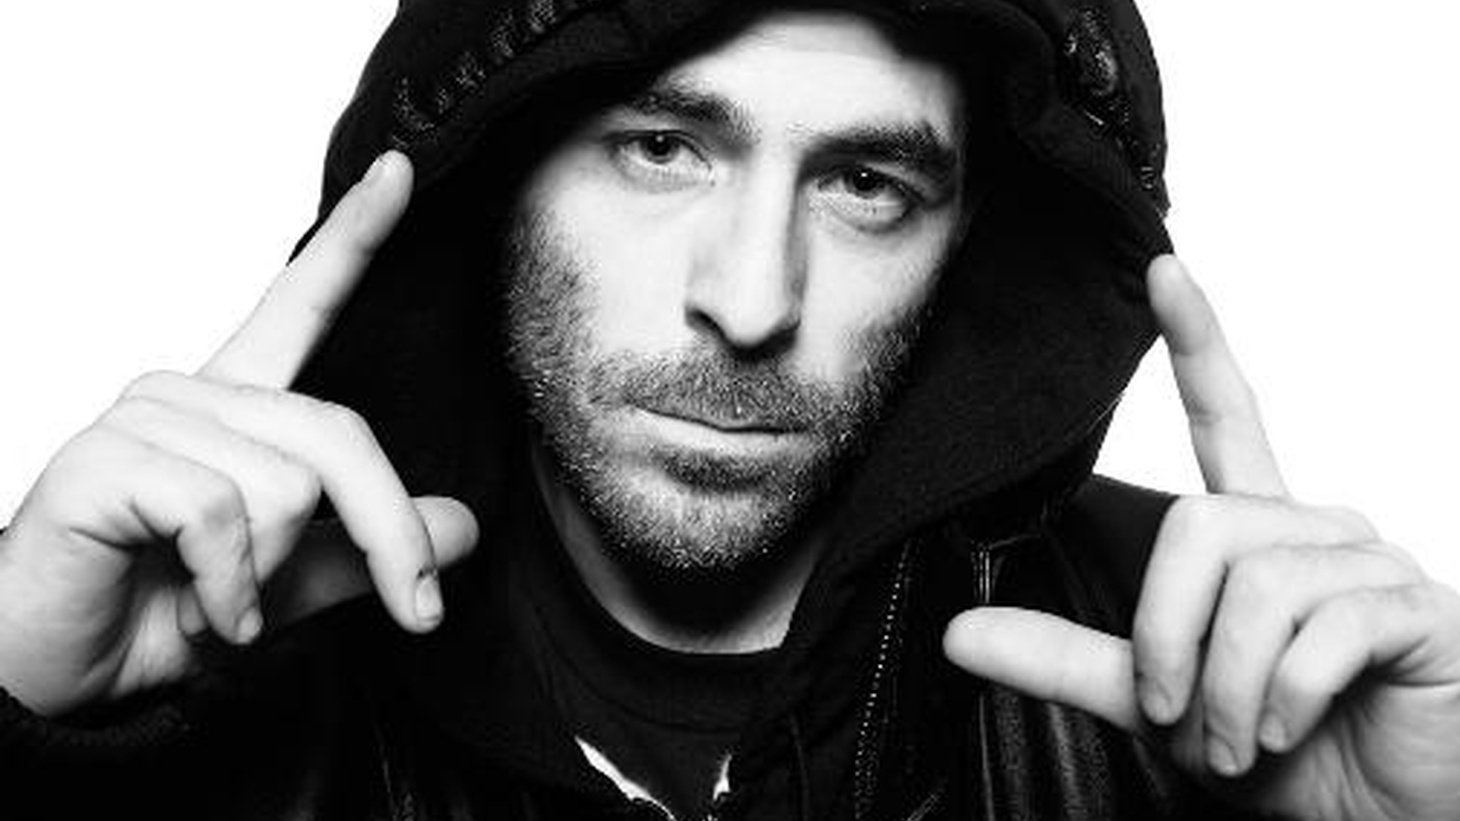 """When I hear an Alchemist beat I can always expect the it to hold its own weight as an instrumental with out the vocalist. Sometimes I scratch my head and think """"How did he do that?"""" Alchemist is one of the most respected producers and beatmakers today."""